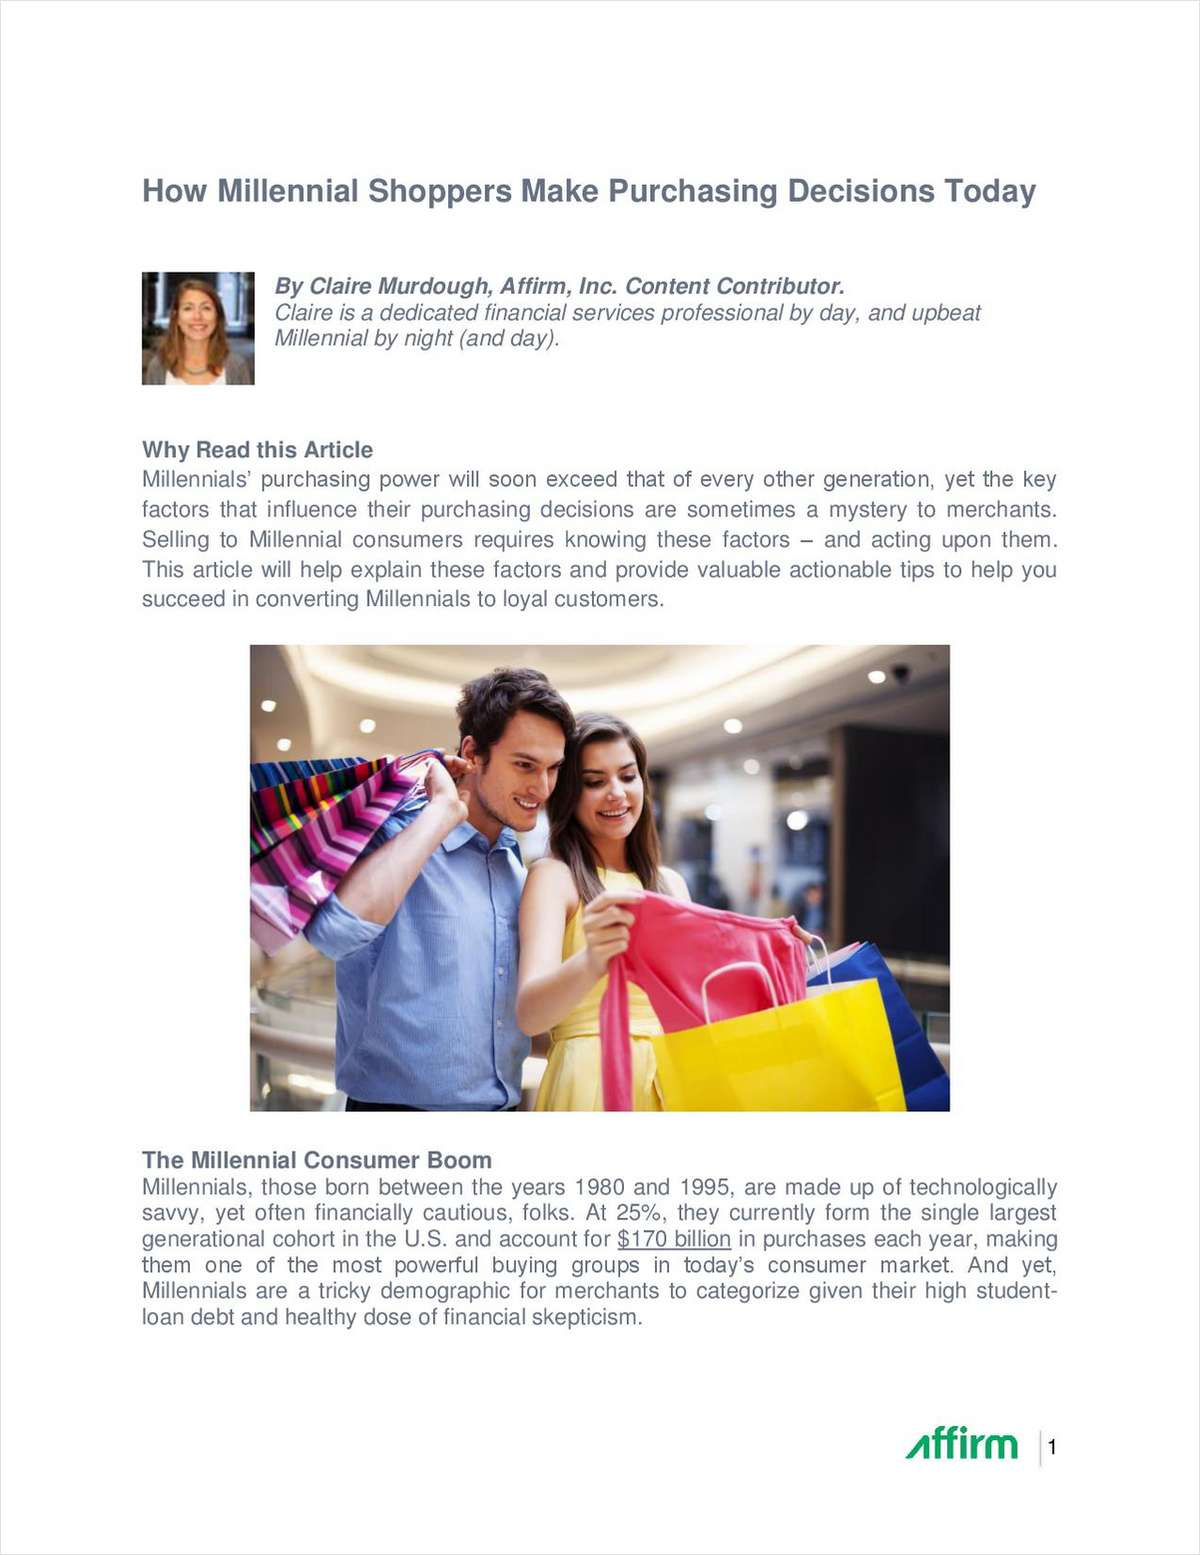 How Millennial Shoppers Make Purchase Decisions Today